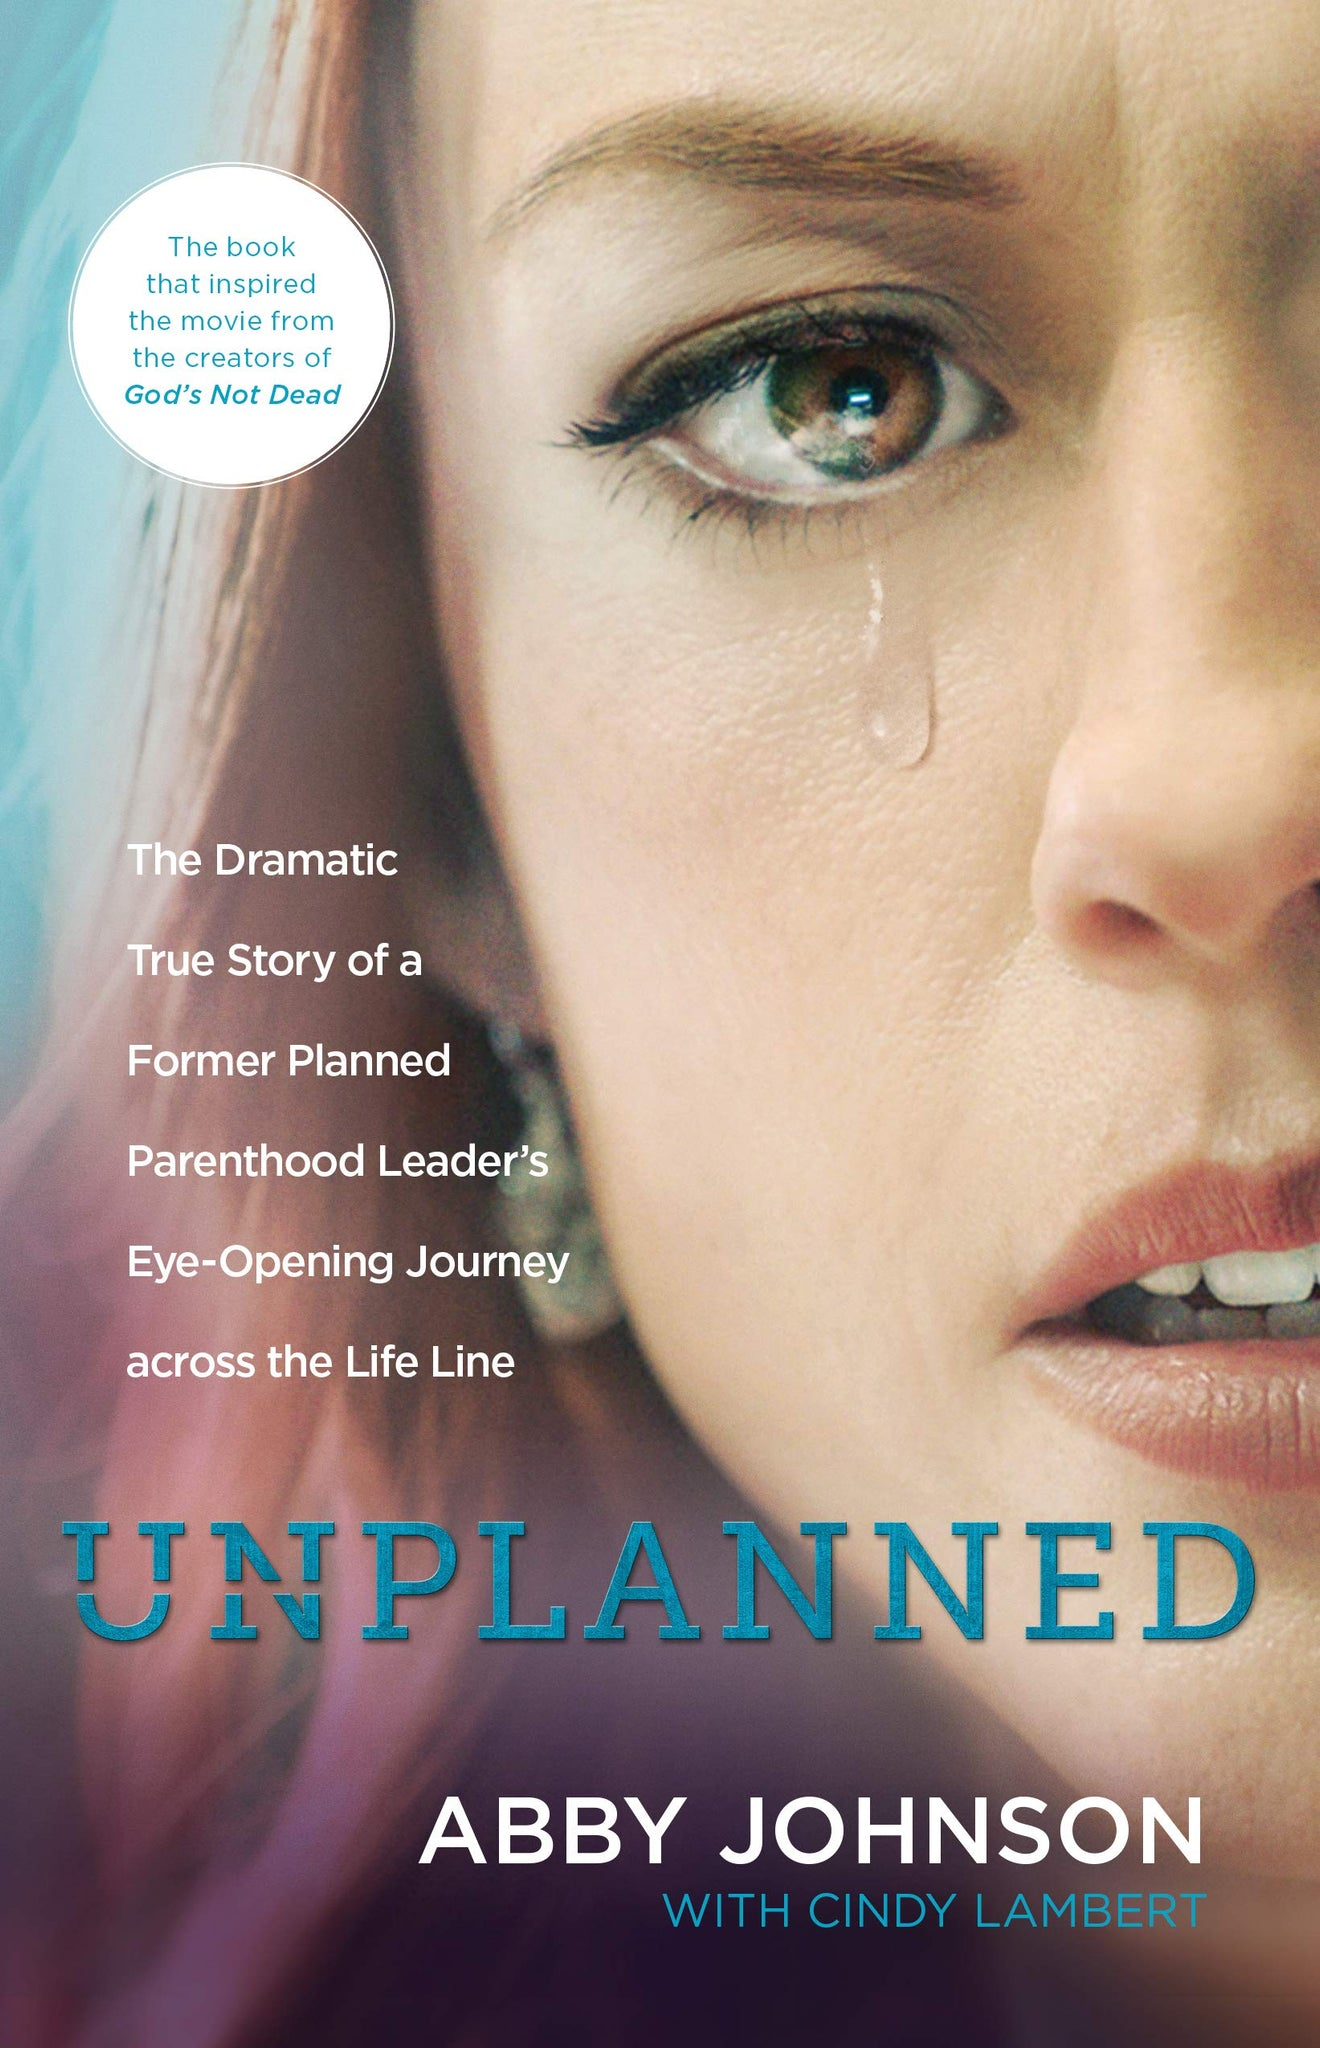 Unplanned - Signed Copy! (Book)